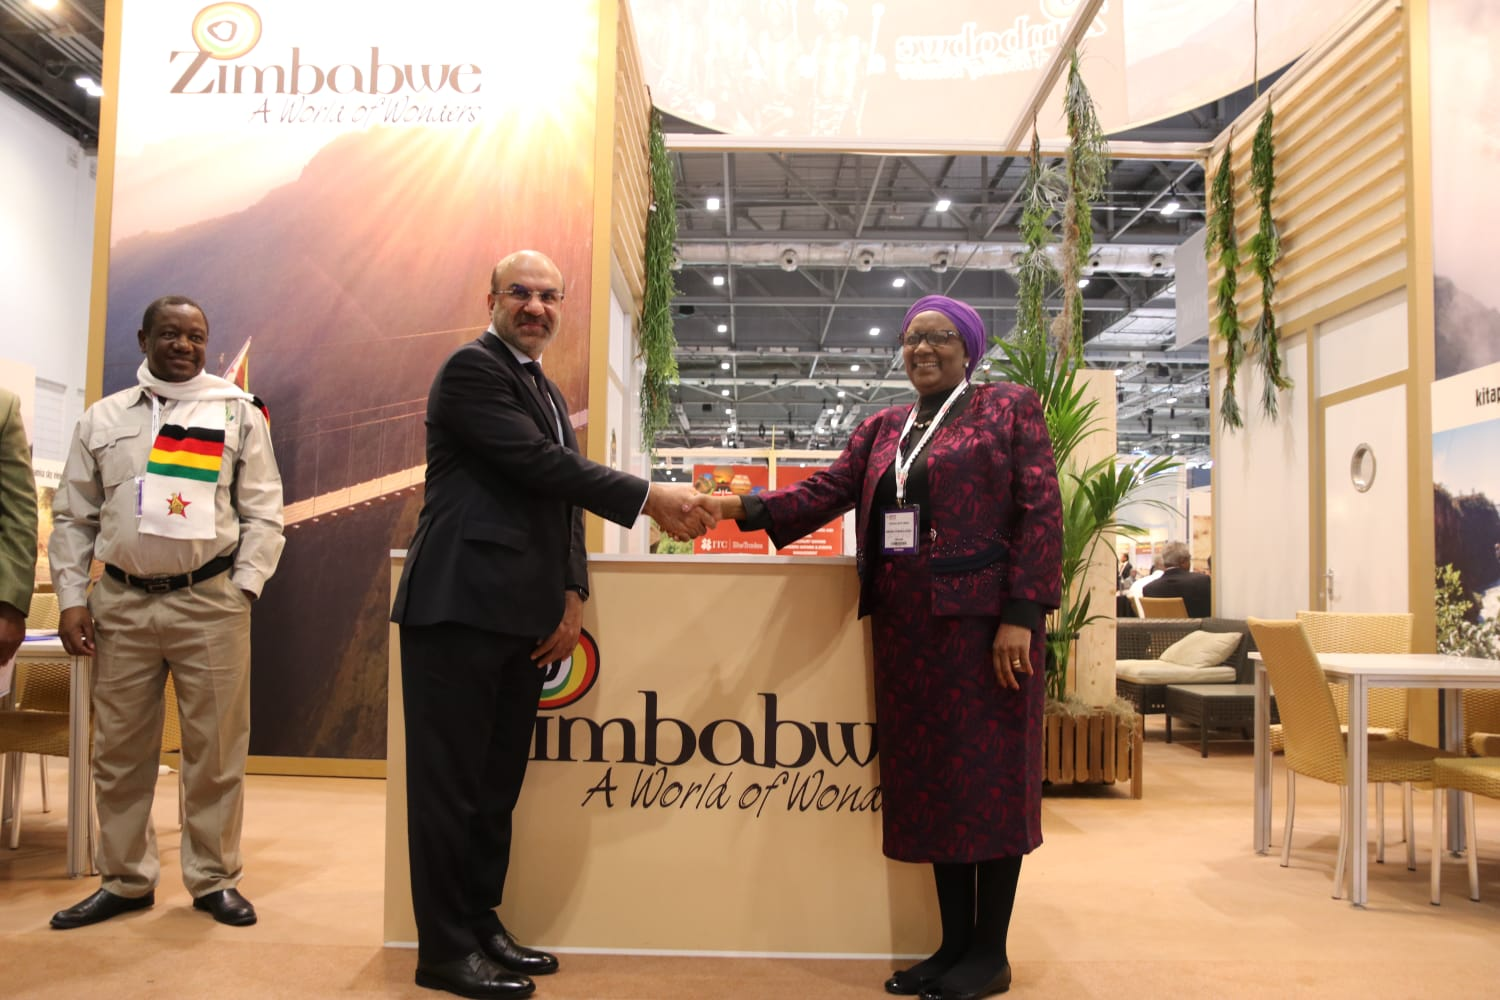 #WTM2018: Zimbabwe inks deal with Al-Jazeera for Tourism promotion